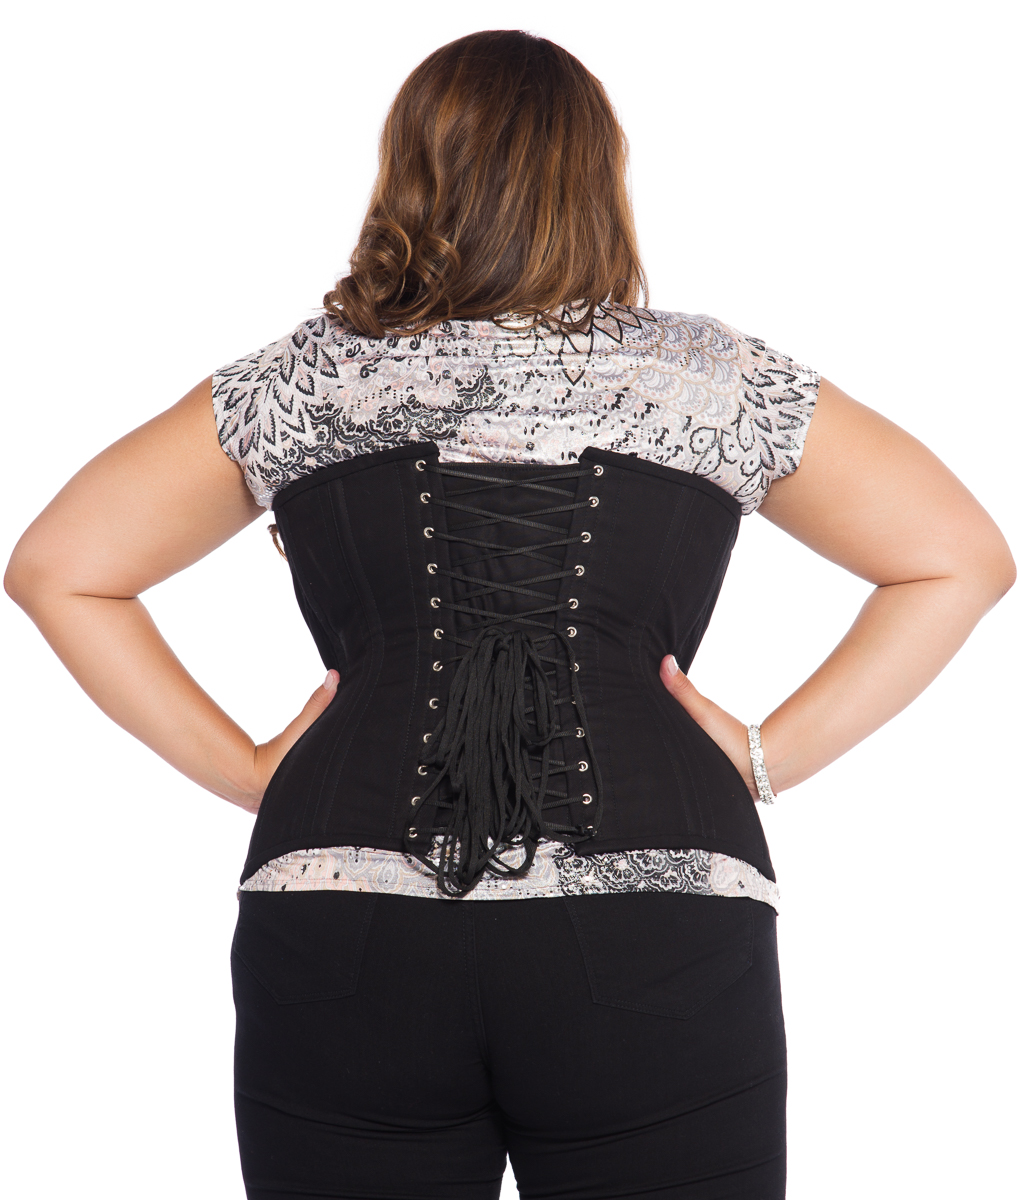 Jolie Black Cotton Plus Size Corset Underbust Steel Boned